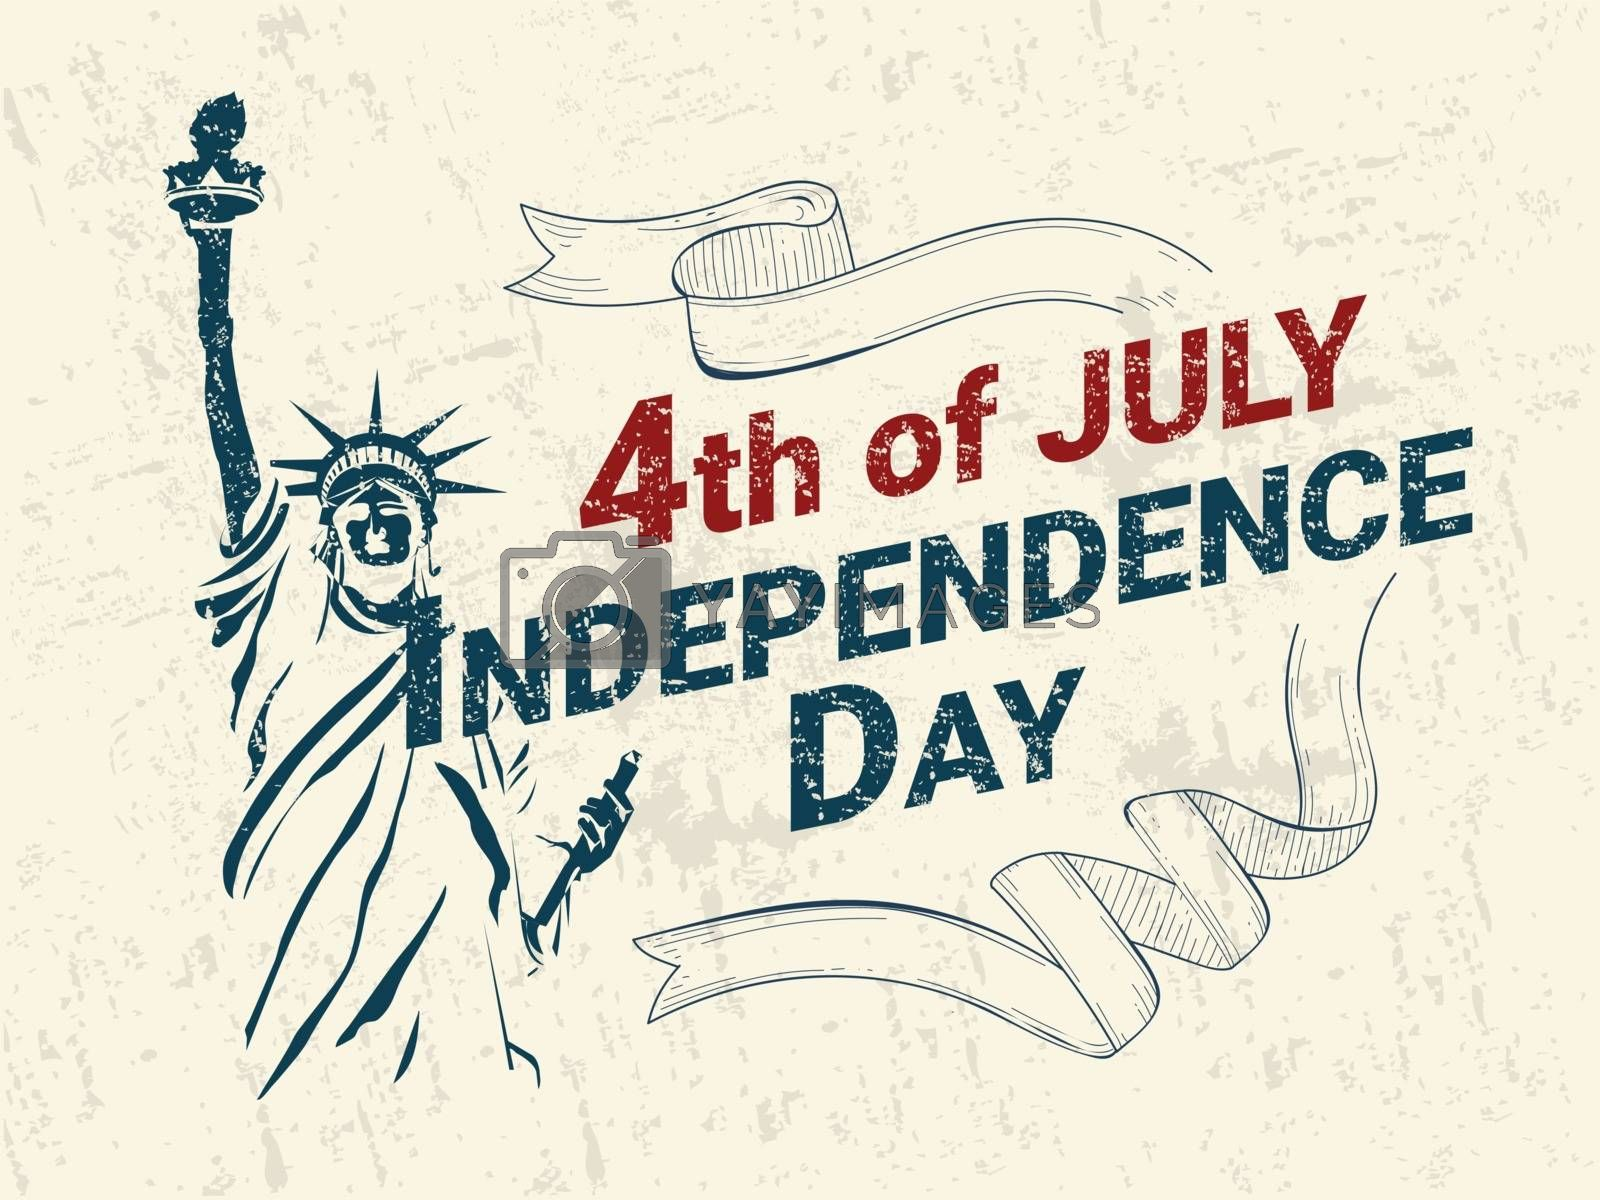 Retro style 4th of July Independence Day poster or banner design with doodle Statue of liberty on grunge background.